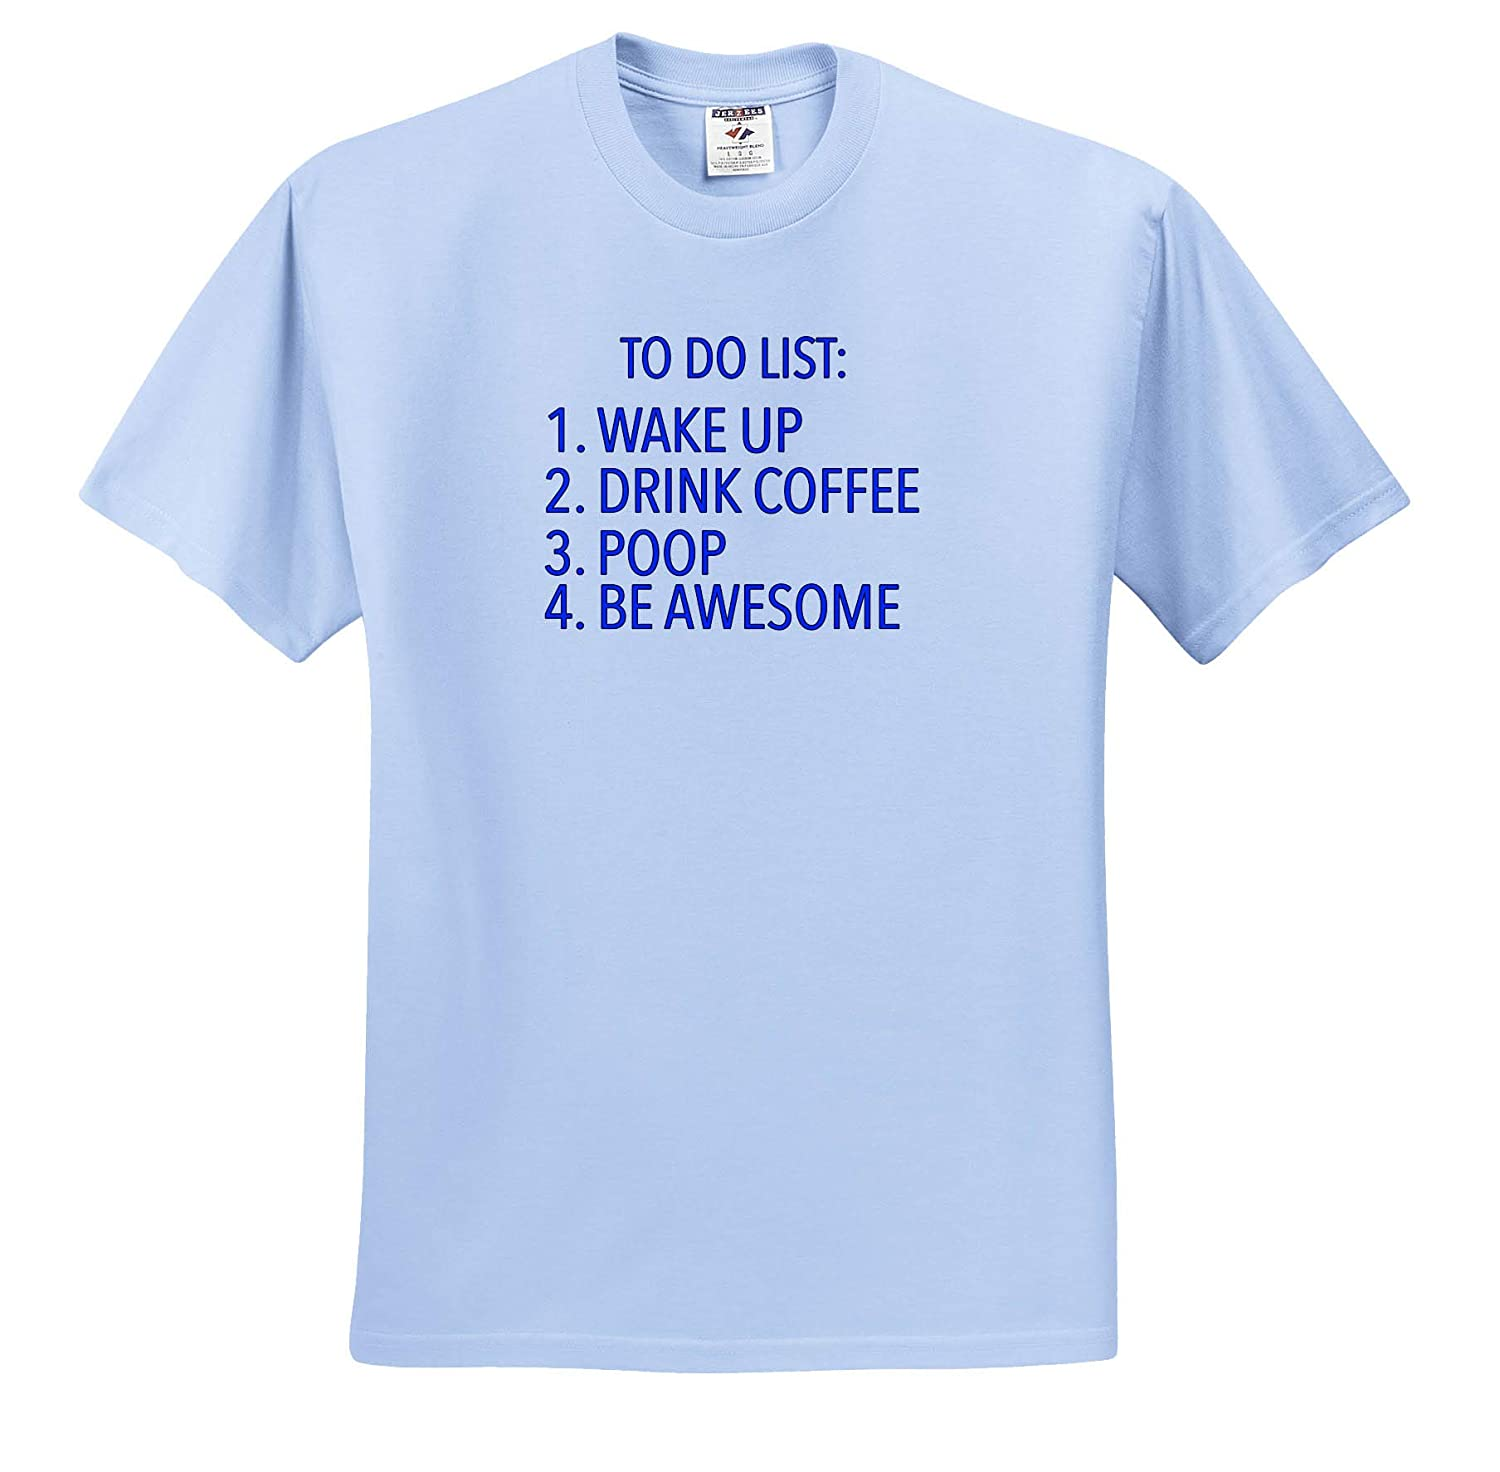 3dRose EvaDane Funny Sayings to Do List Blue ts/_308899 Adult T-Shirt XL